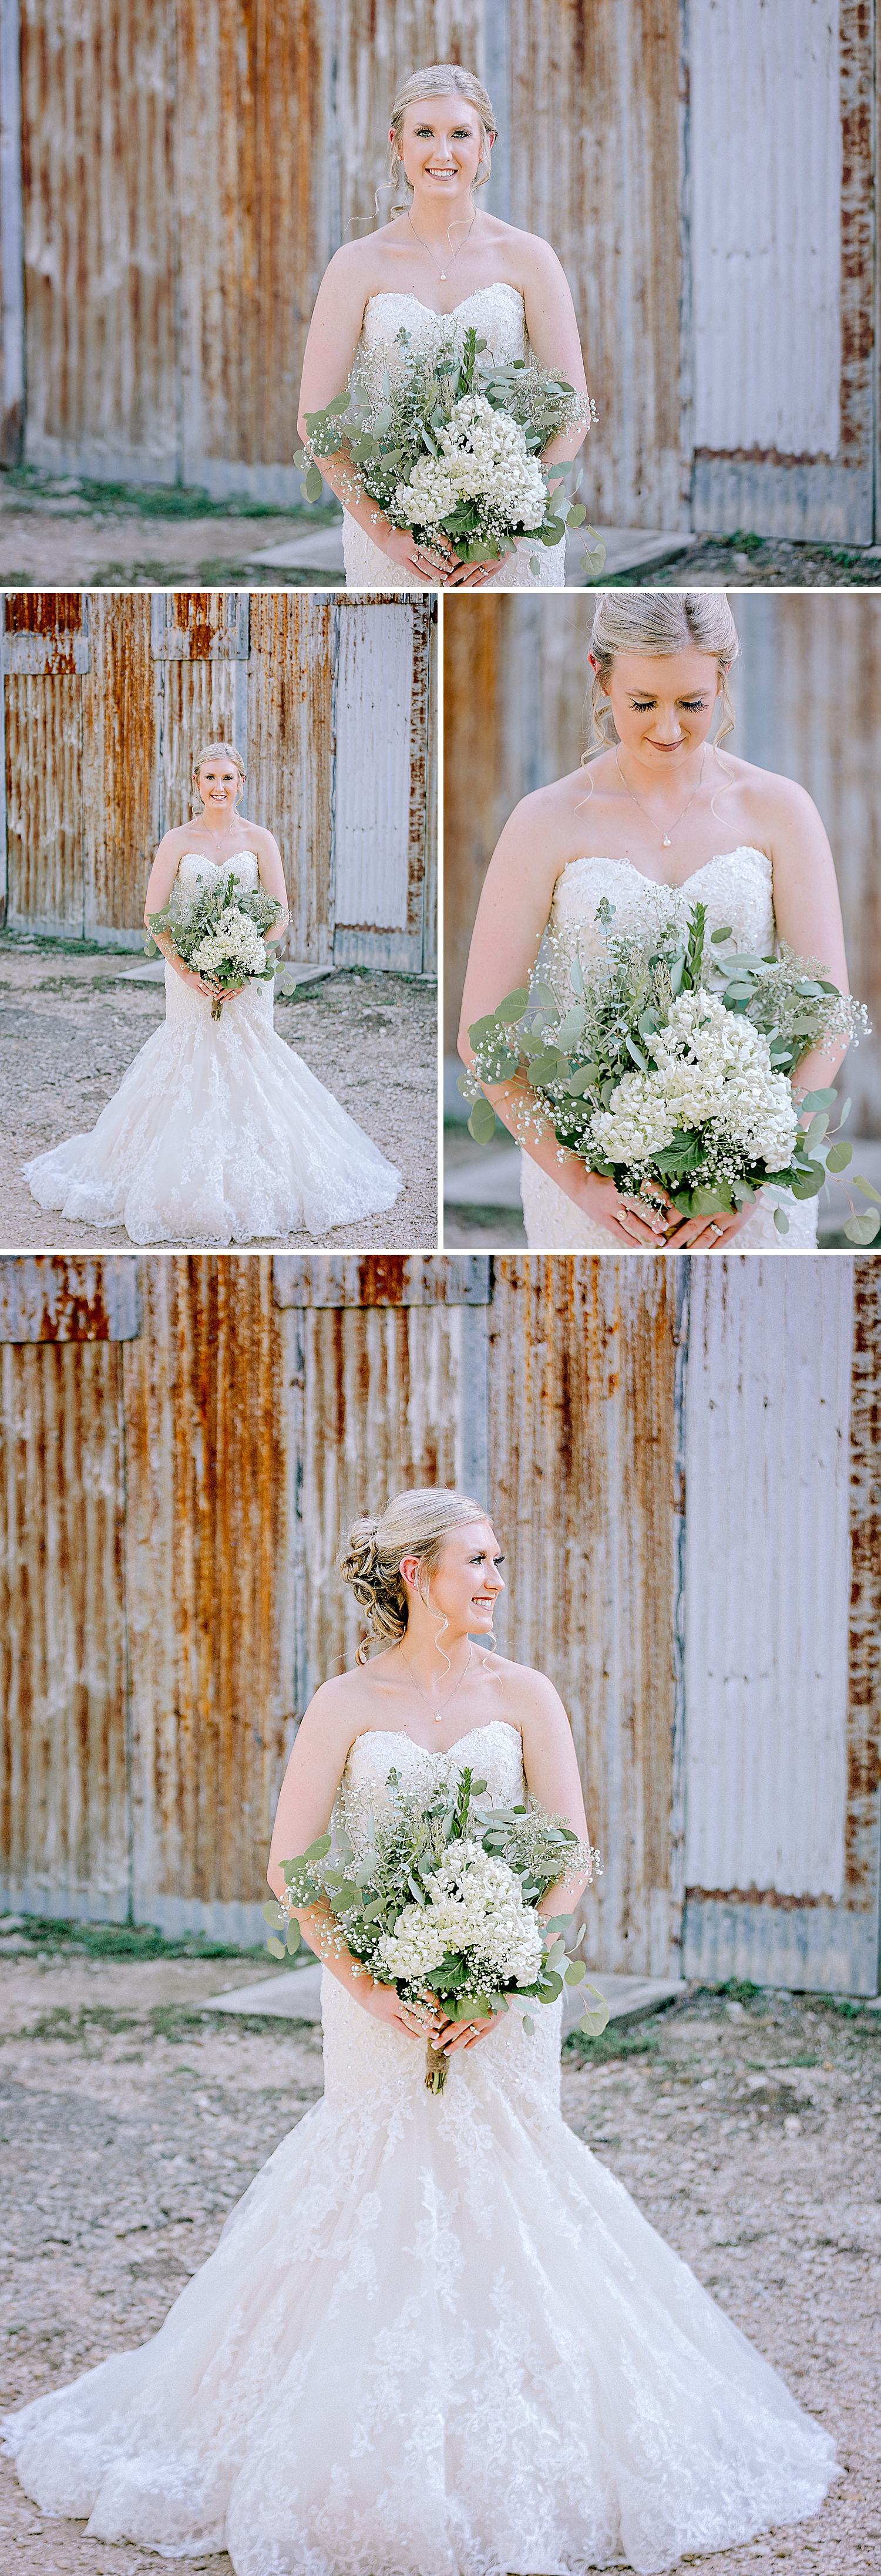 Carly-Barton-Photography-Bridal-Photos-Gruene-Rustic-New-Braunfels-Wedding-Photographer_0017.jpg